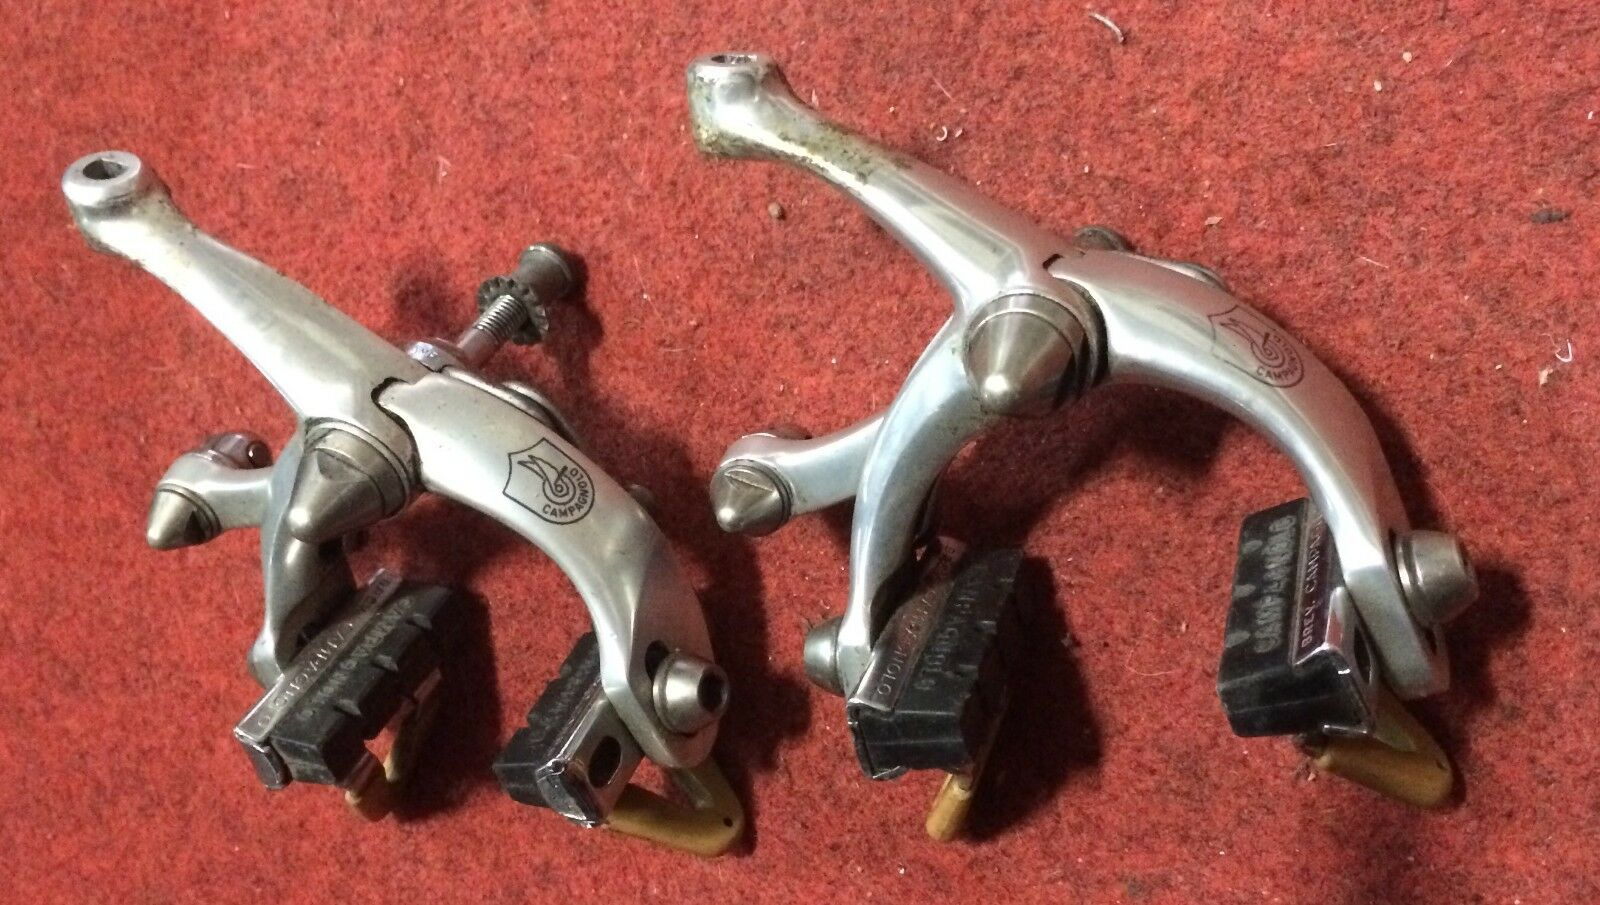 Coppia freni bici corsa Campagnolo vintage road bike brake set couple no roll